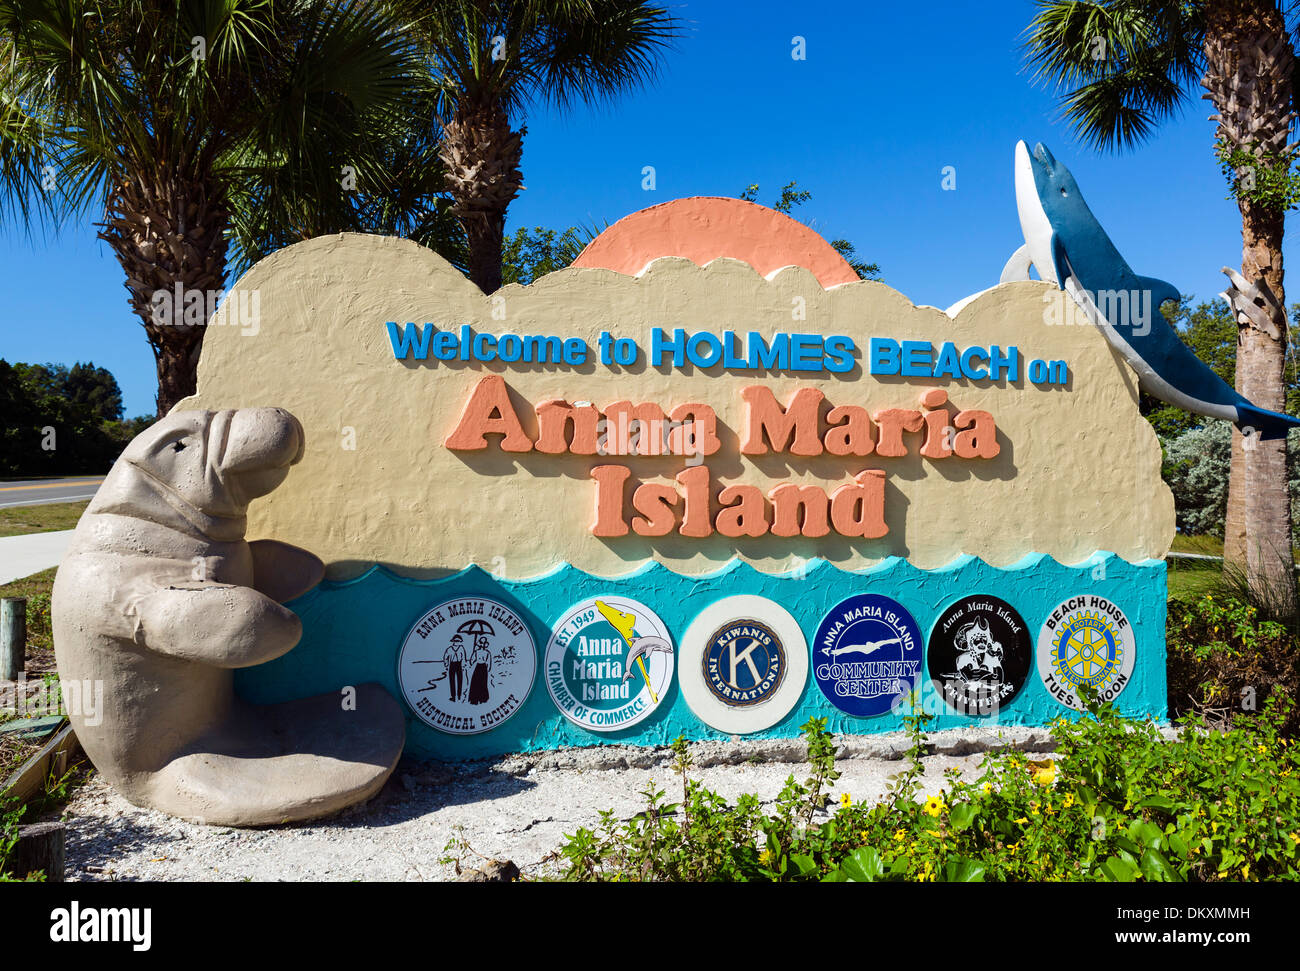 holmes beach chat Search for a rental home, apartment, condo, cabin or other type of vacation rental in holmes beach florida for your next vacation.